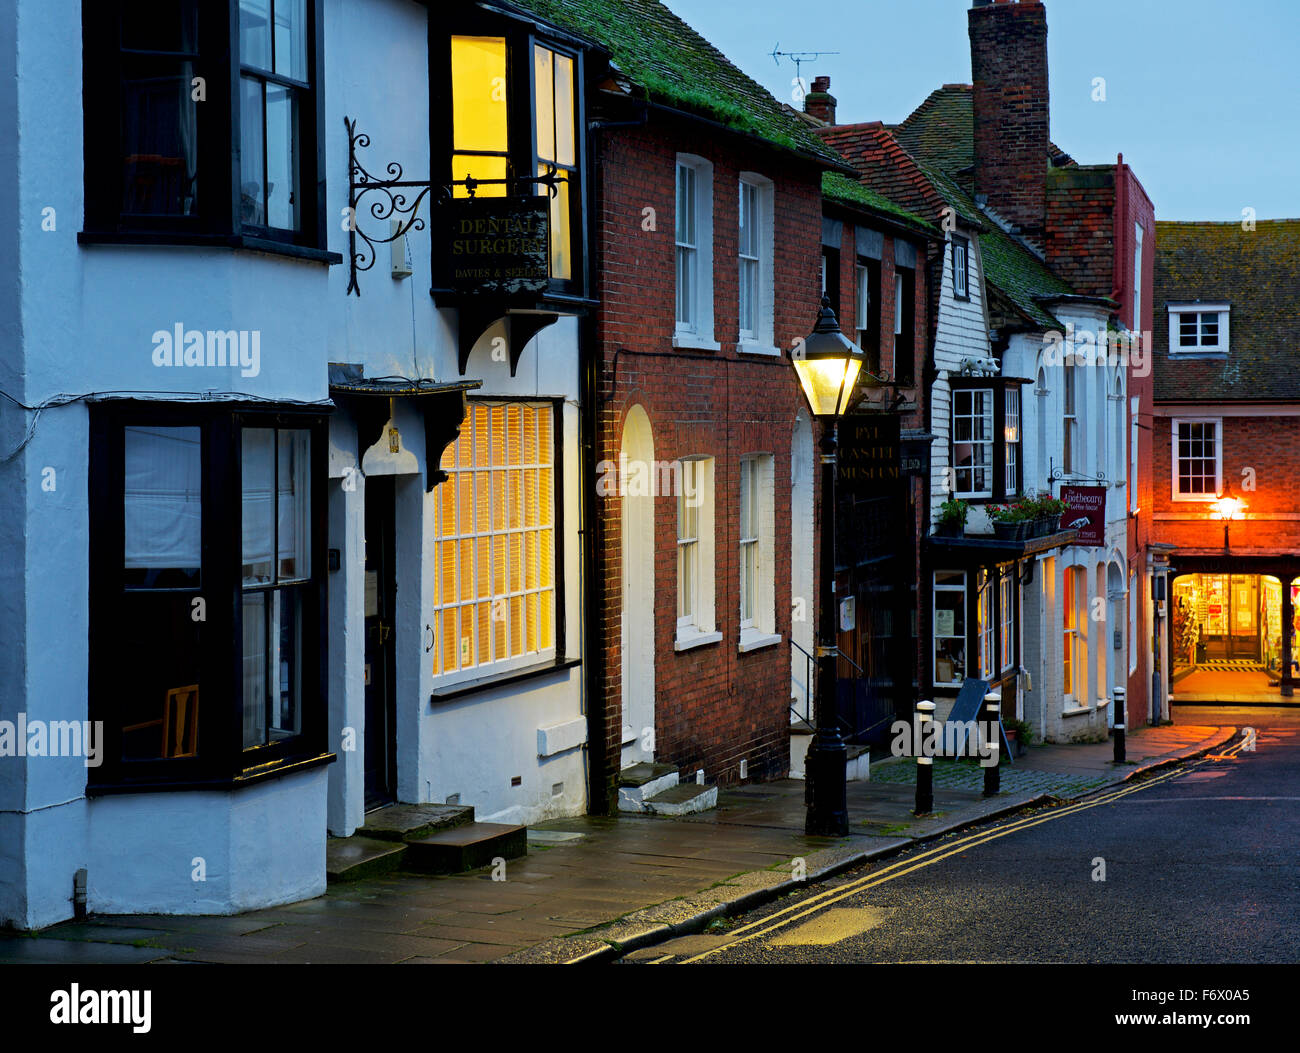 Lion Street, seigle, au crépuscule, Kent England UK Photo Stock